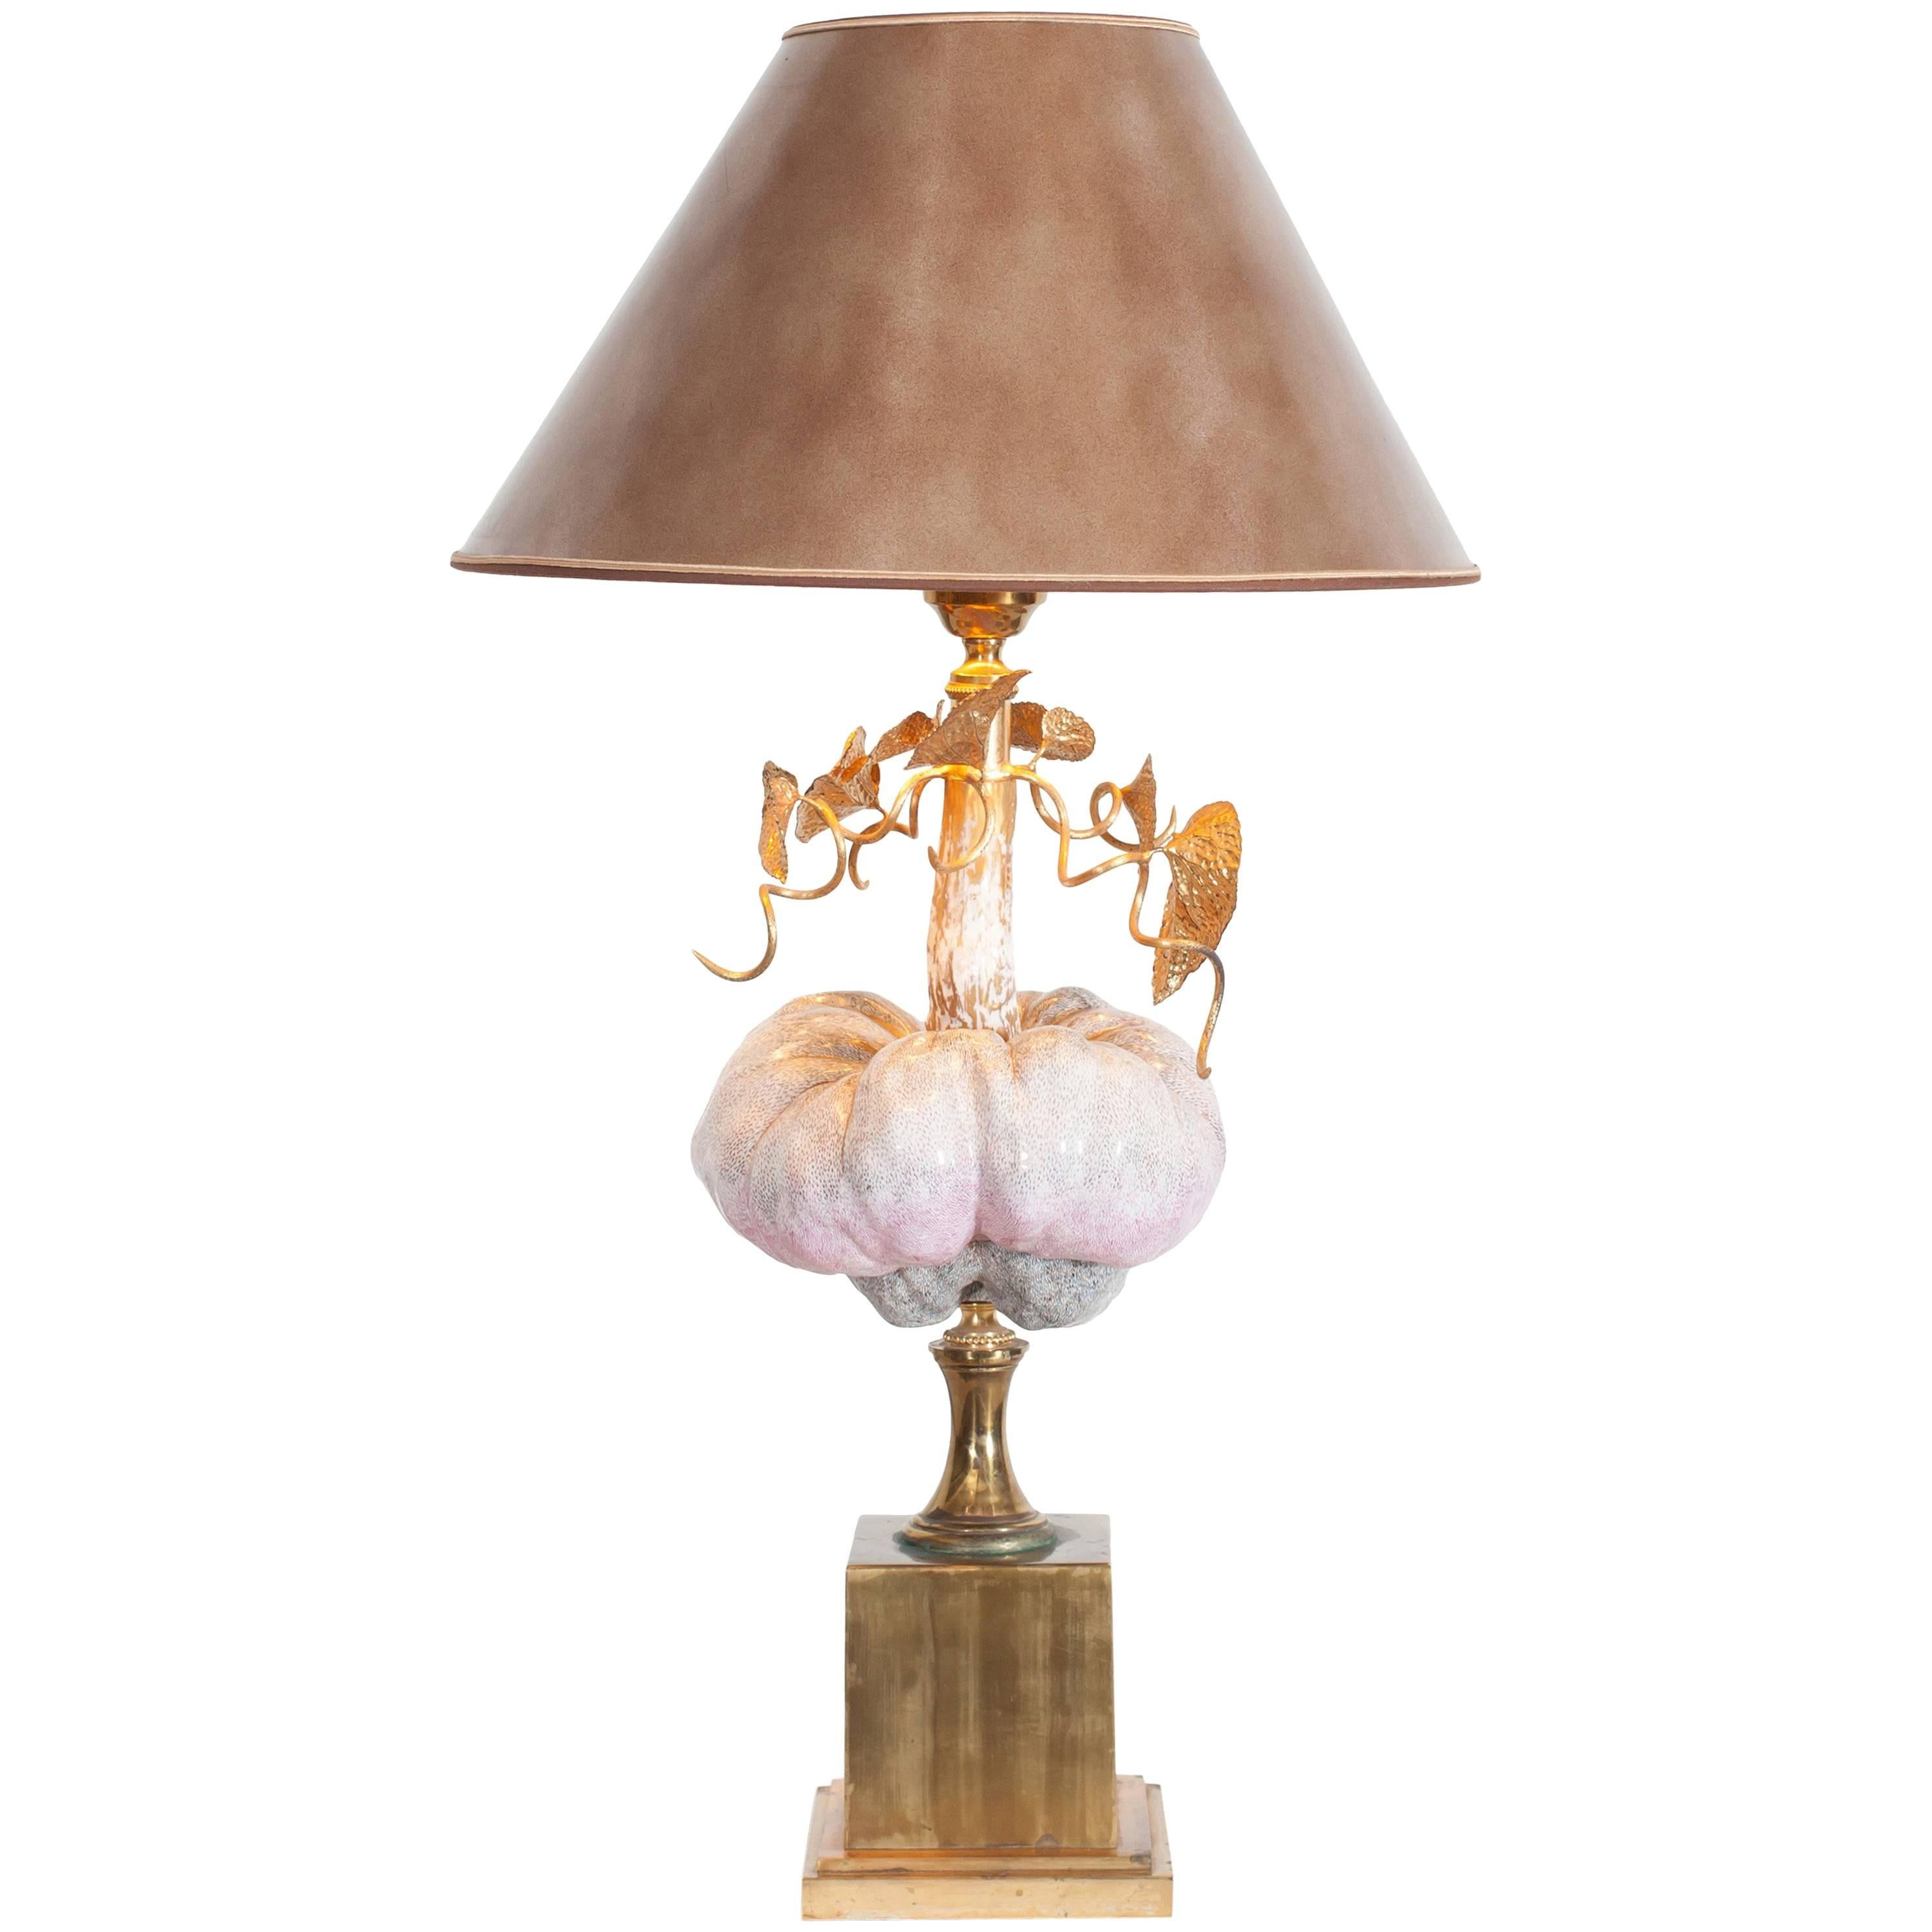 Hollywood Regency Table Lamp in Porcelain and Brass